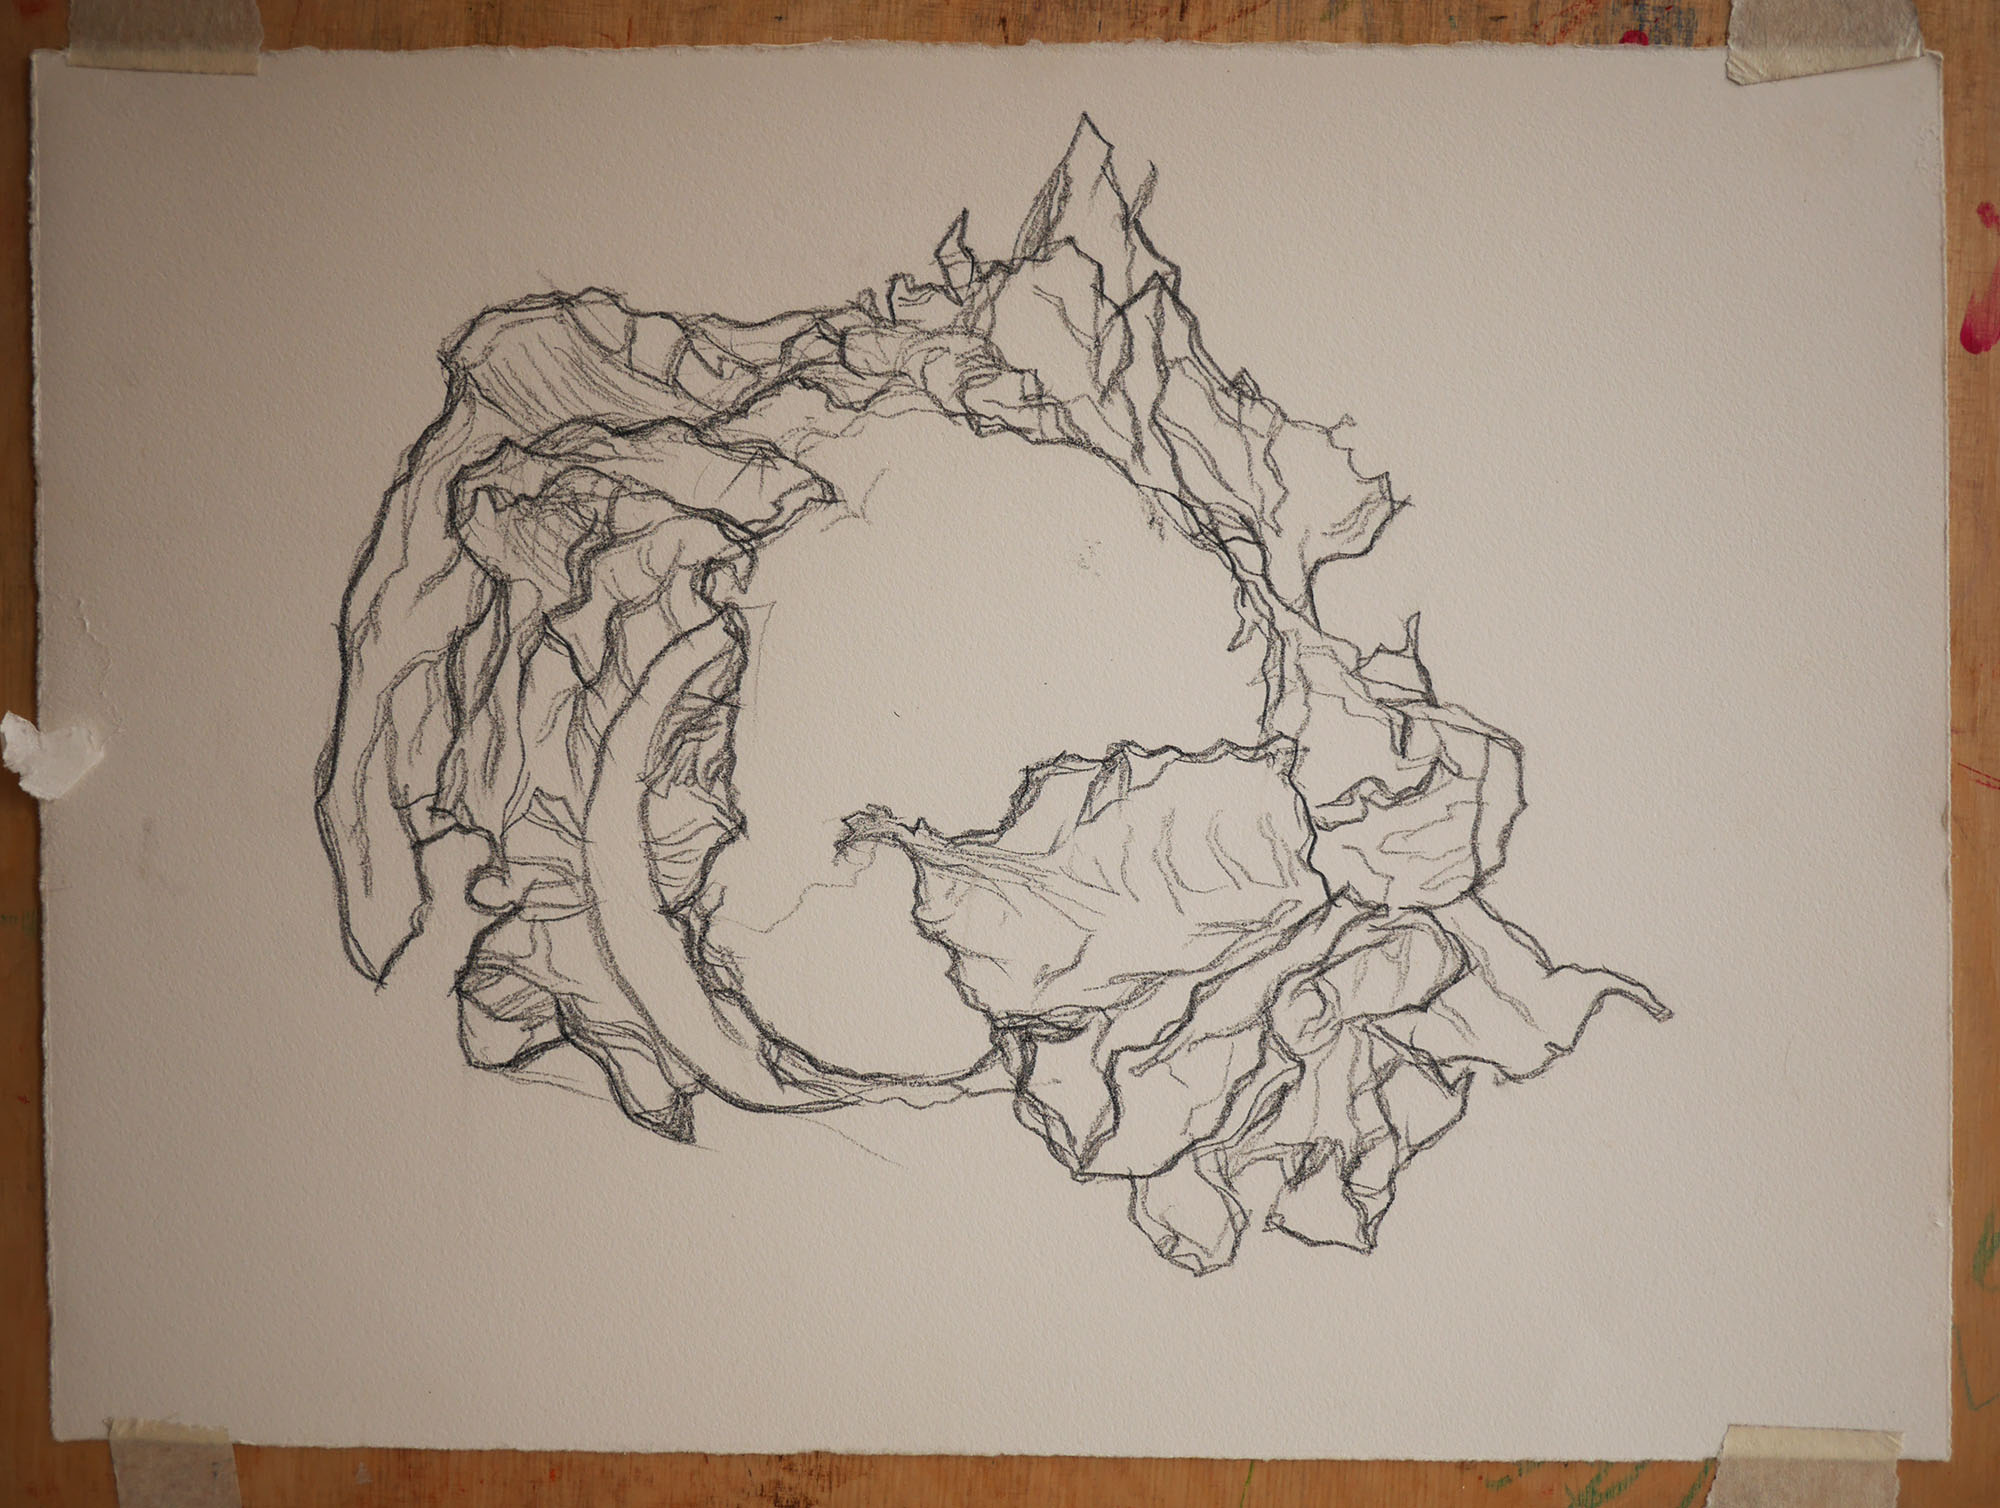 zwart-wit tekening bloemkool black and white drawing cauliflower